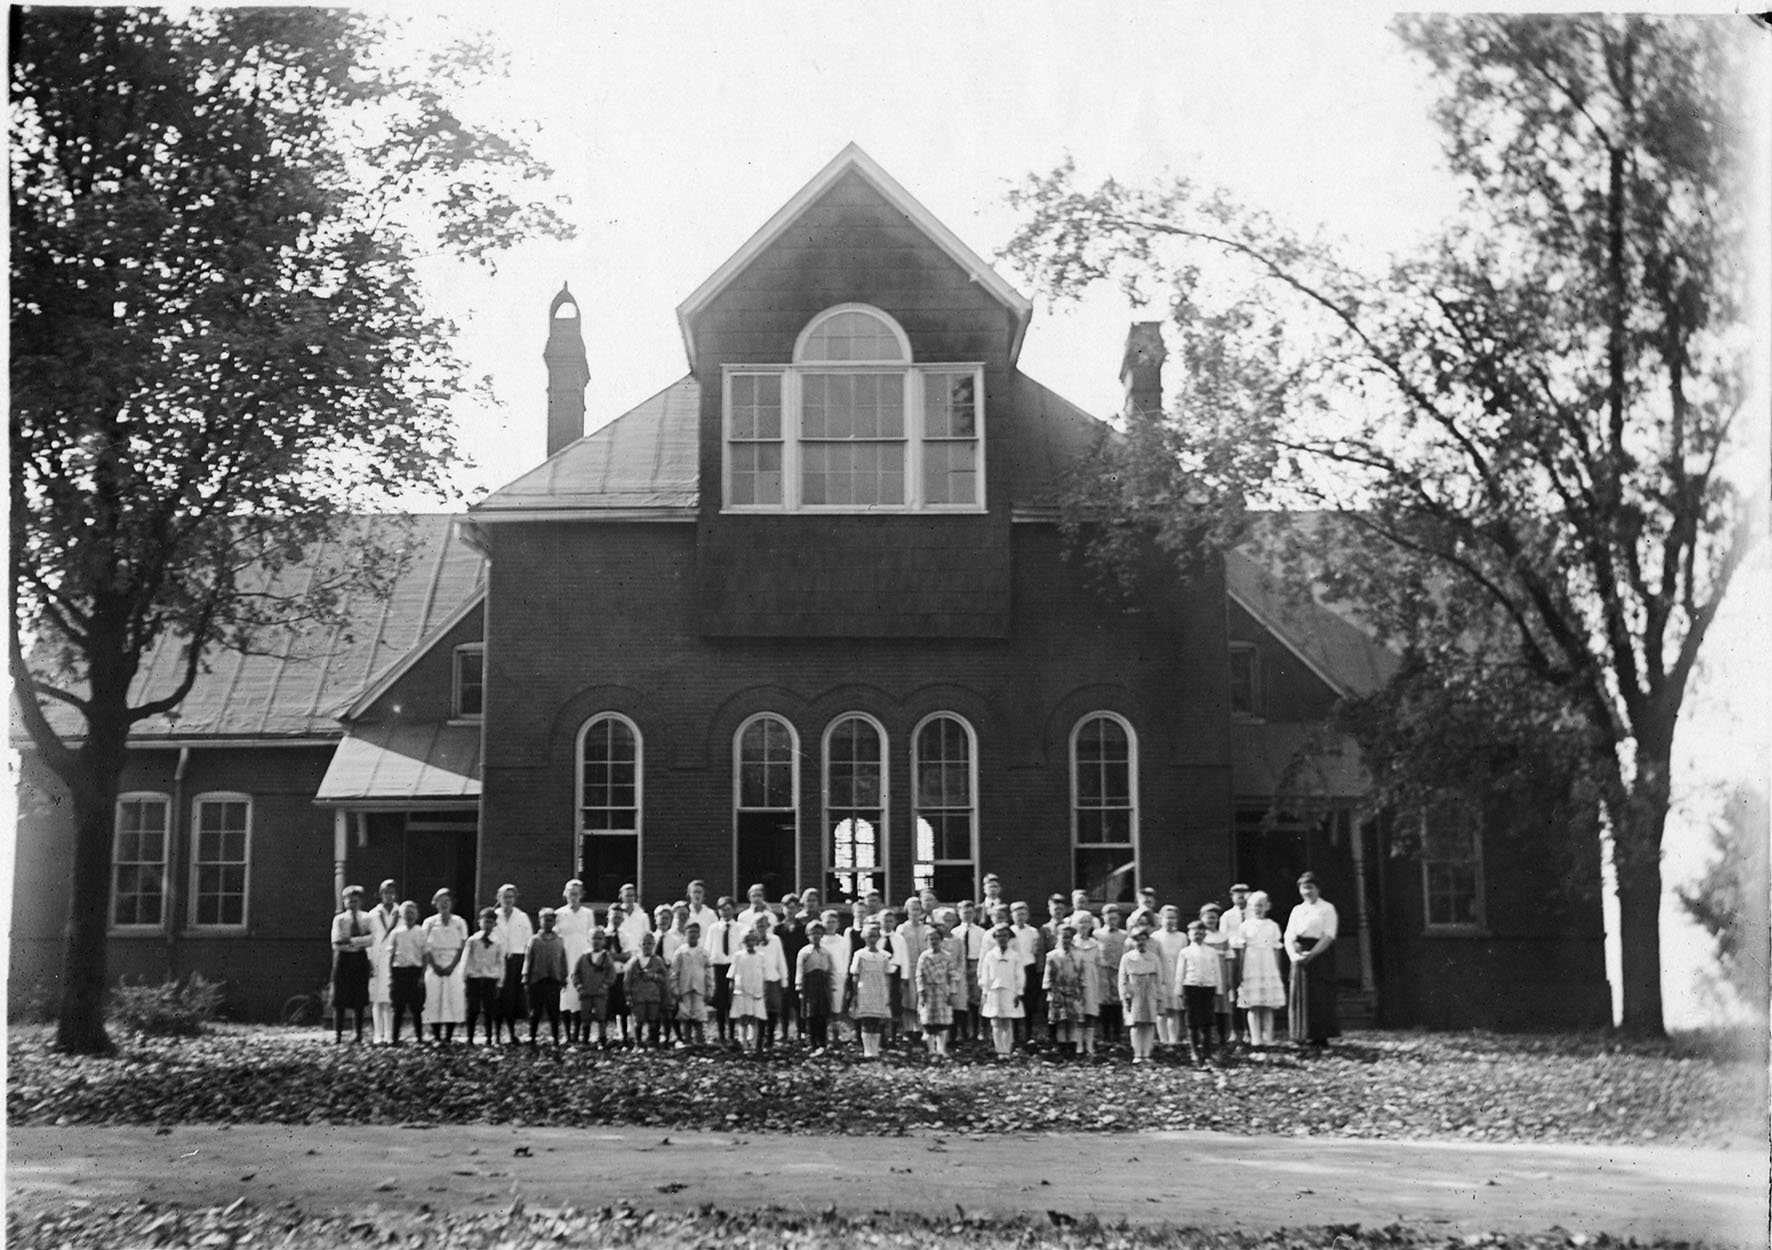 Central University Preparatory School Building with students in the front yard, 1920s. EKU Photo Collection.